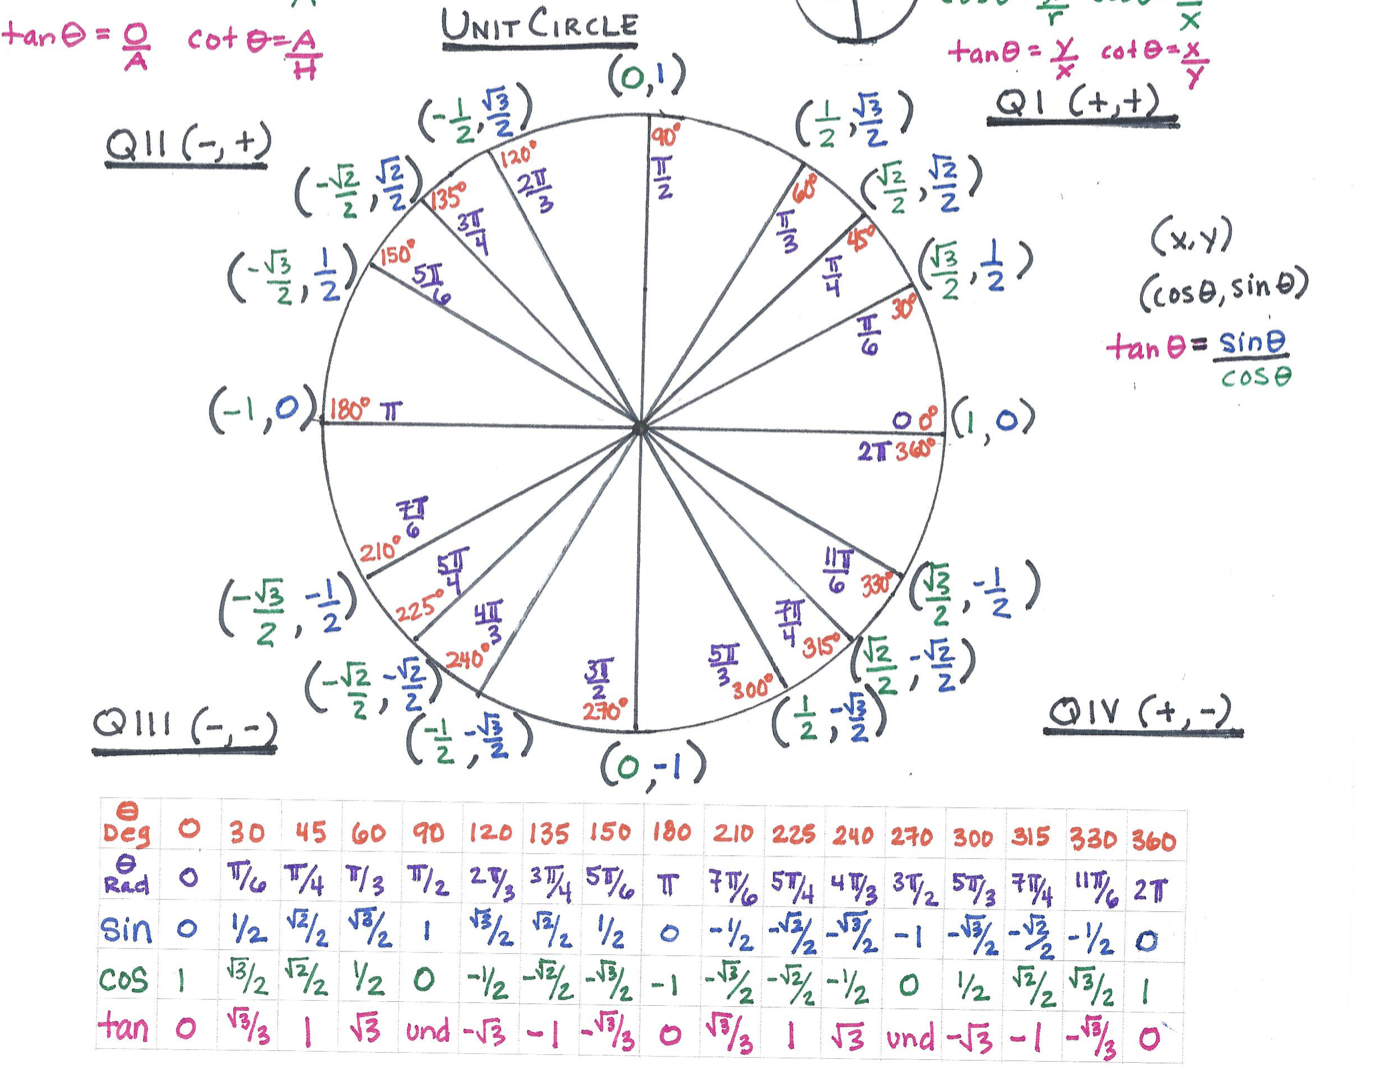 Colorful Basic Trig Cheat Sheet The Colors Help The Eye